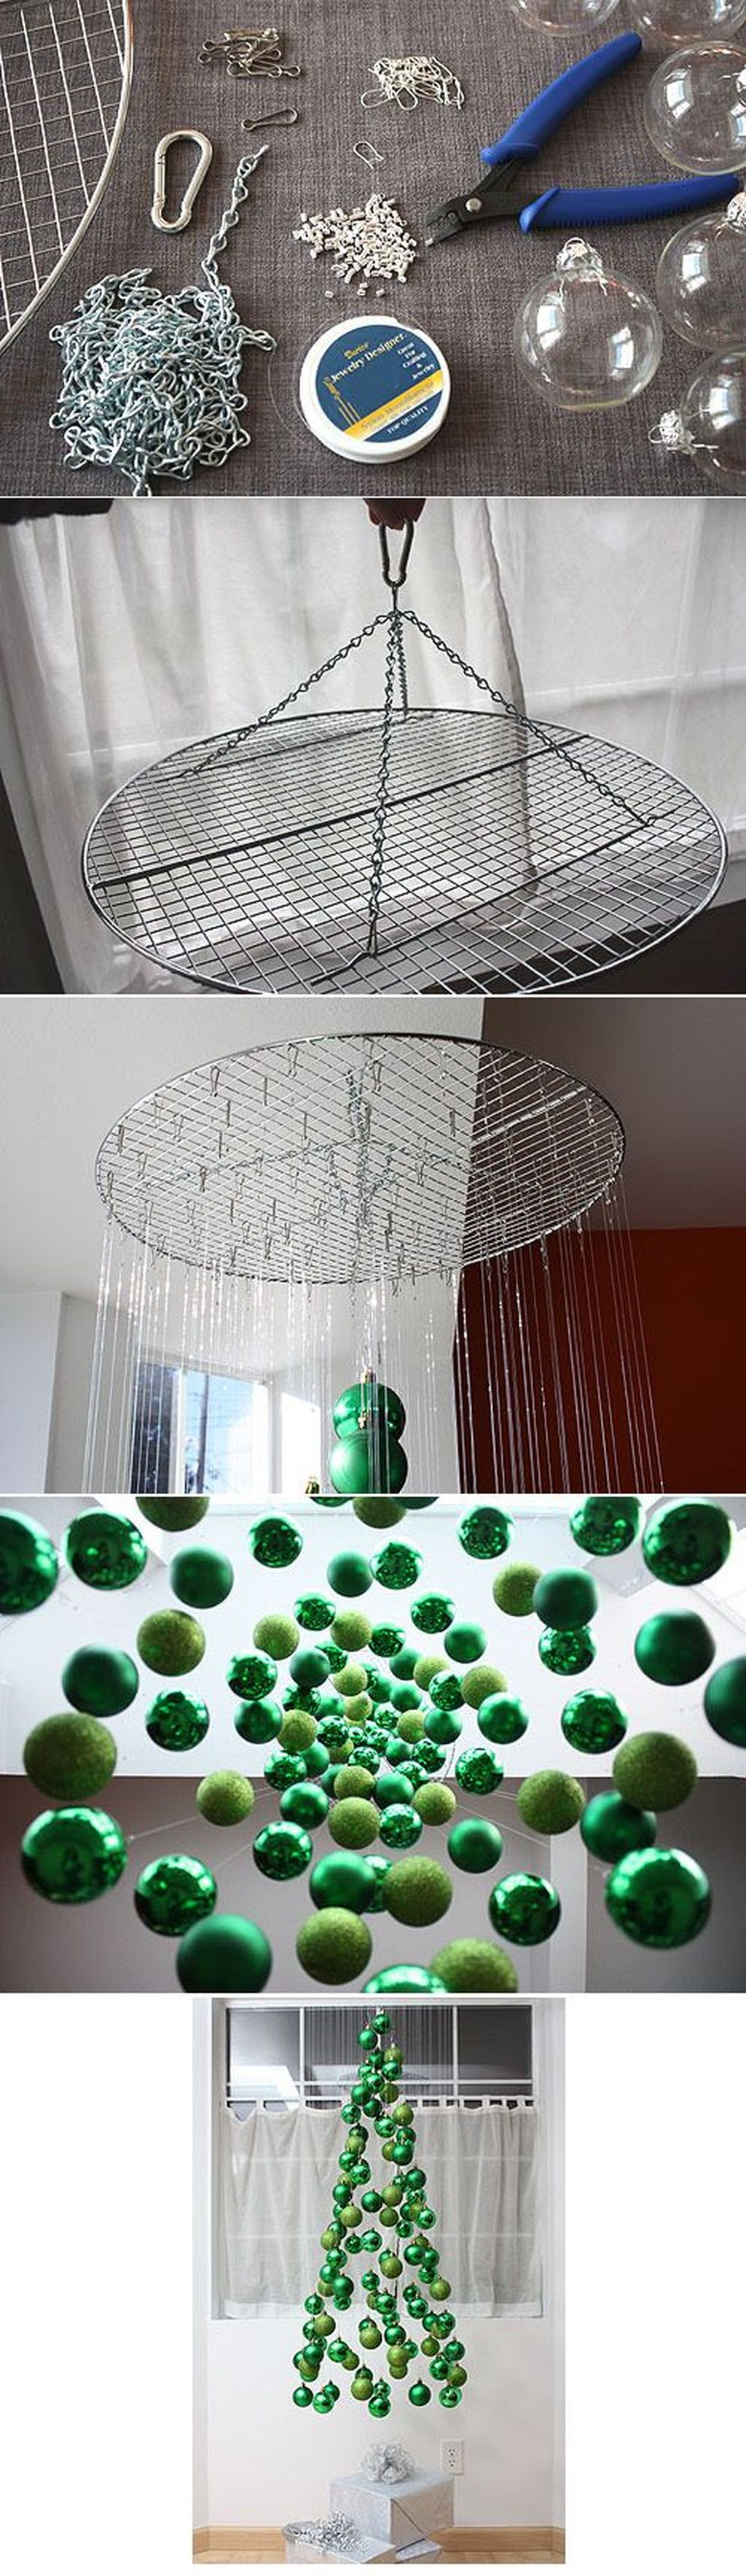 Easy And Creative DIY Christmas Tree Design Ideas You Can Try As Alternatives 73